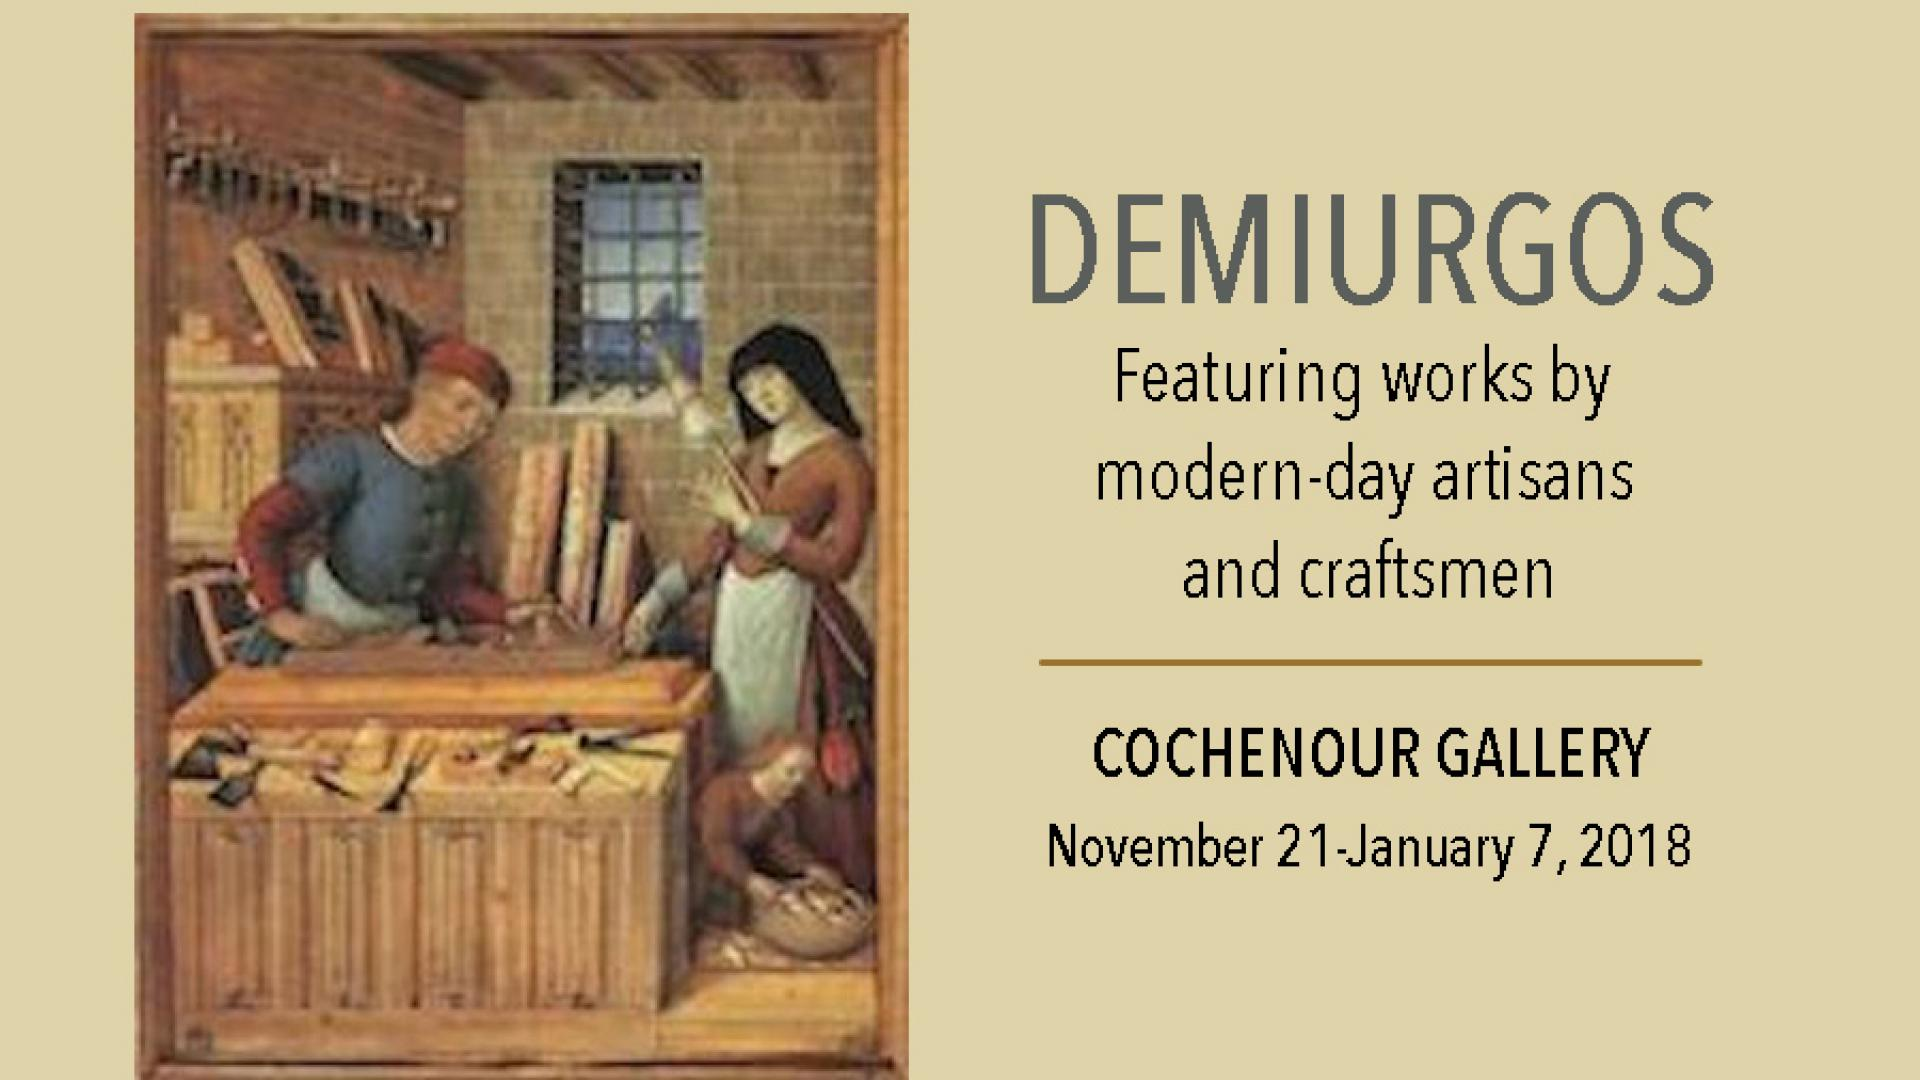 Demiurgos – ad for the show in the Cochenor Gallery and showing one example of artwork to be seen.